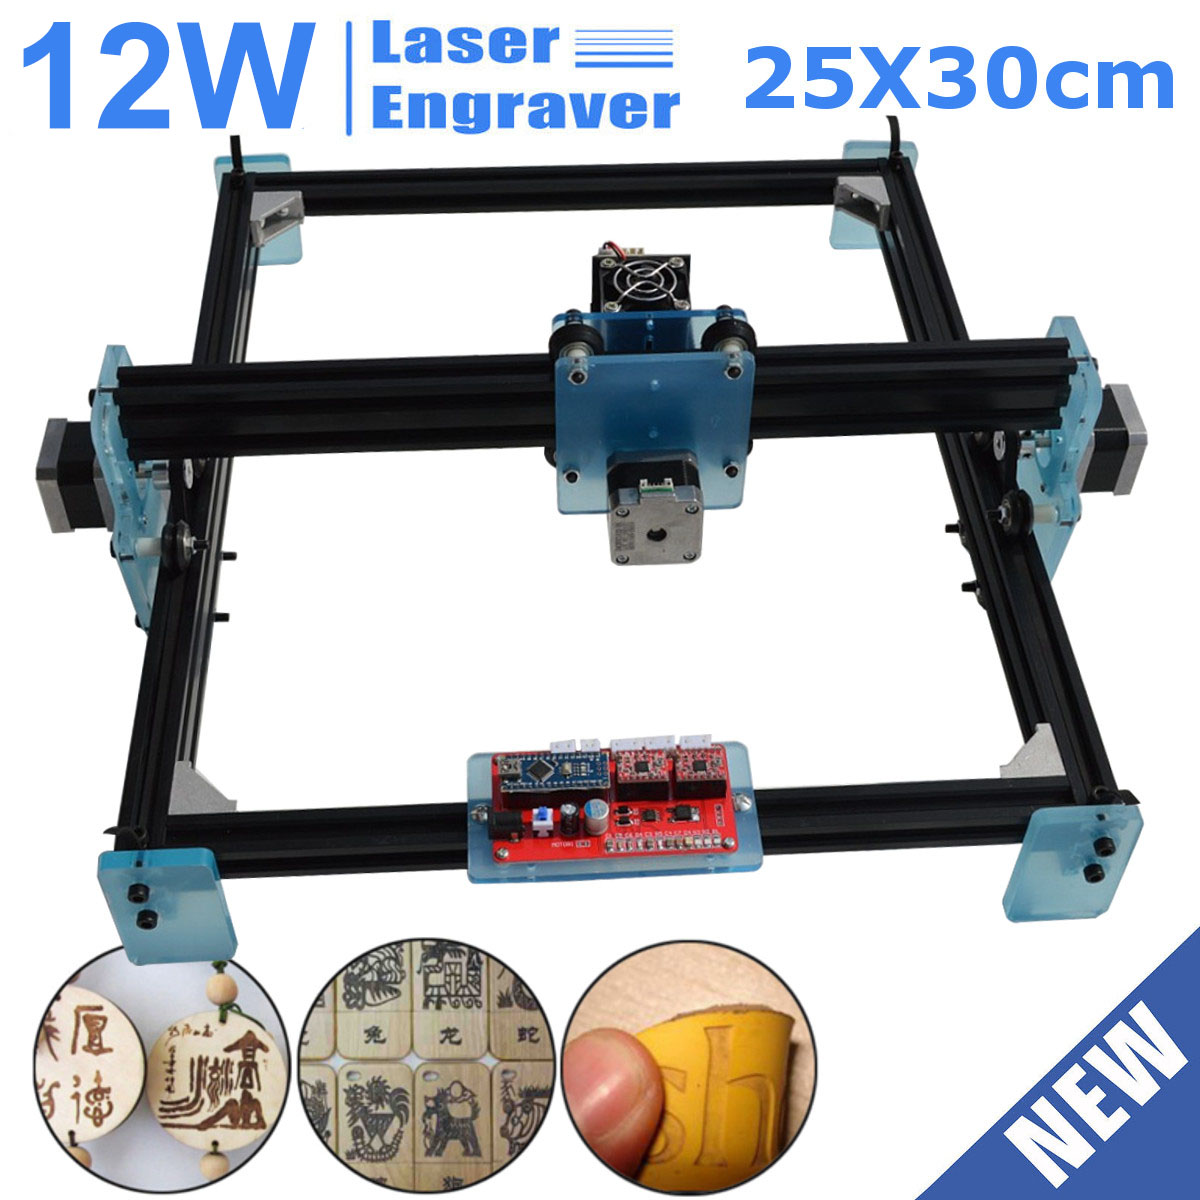 63X51X25cm DIY 12W Mini CNC Laser Engraving Machine Laser Cutting Machine Metal Engrave Printer Marking Machine Advanced Toys